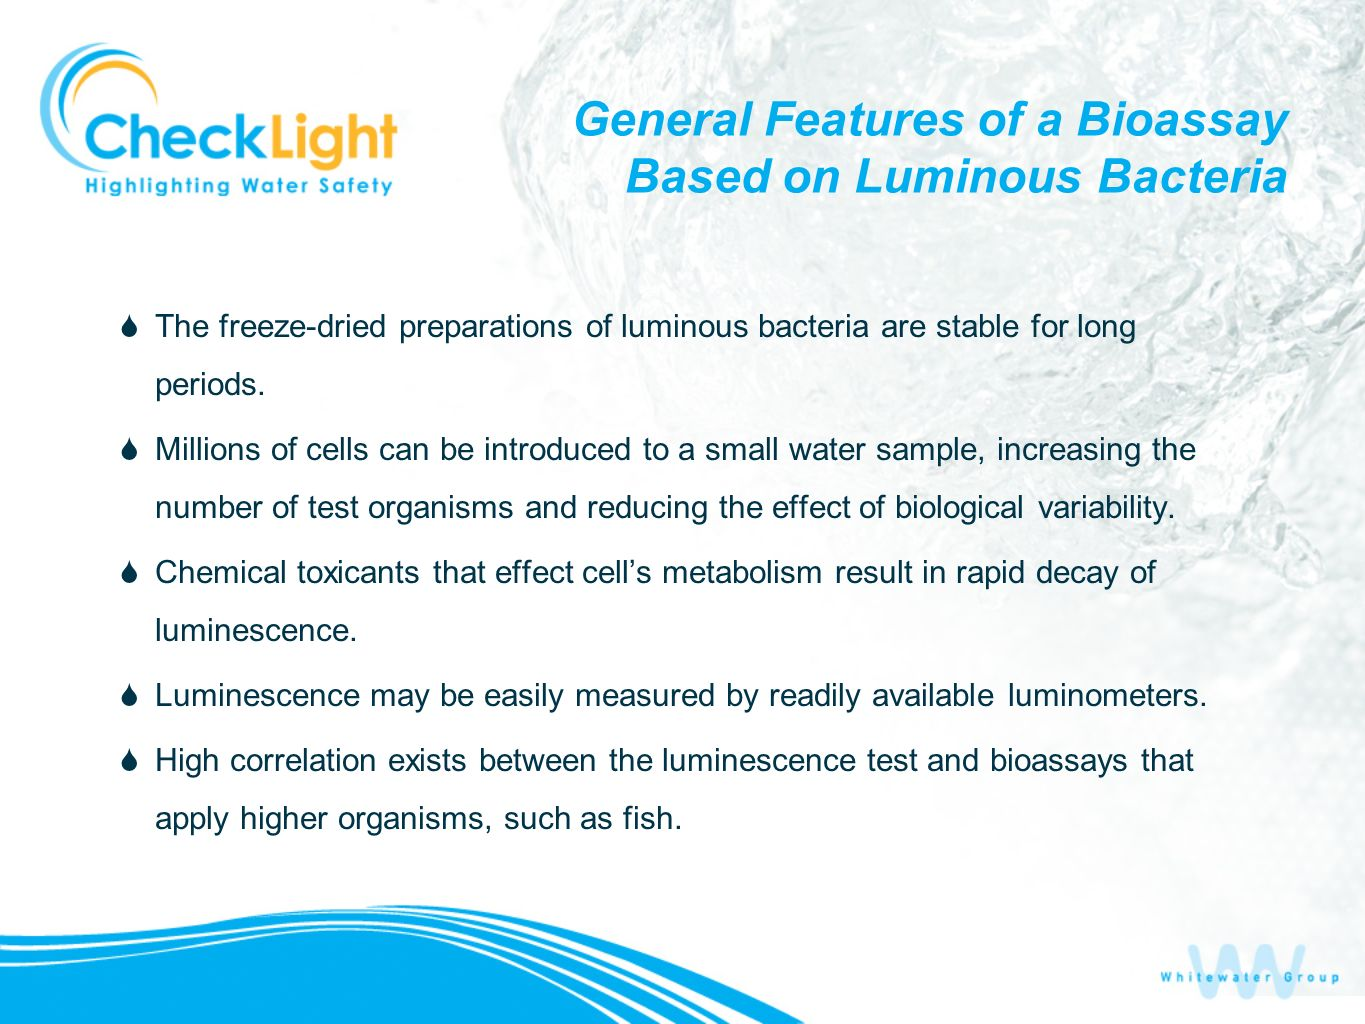 General Features of a Bioassay Based on Luminous Bacteria The freeze-dried preparations of luminous bacteria are stable for long periods.